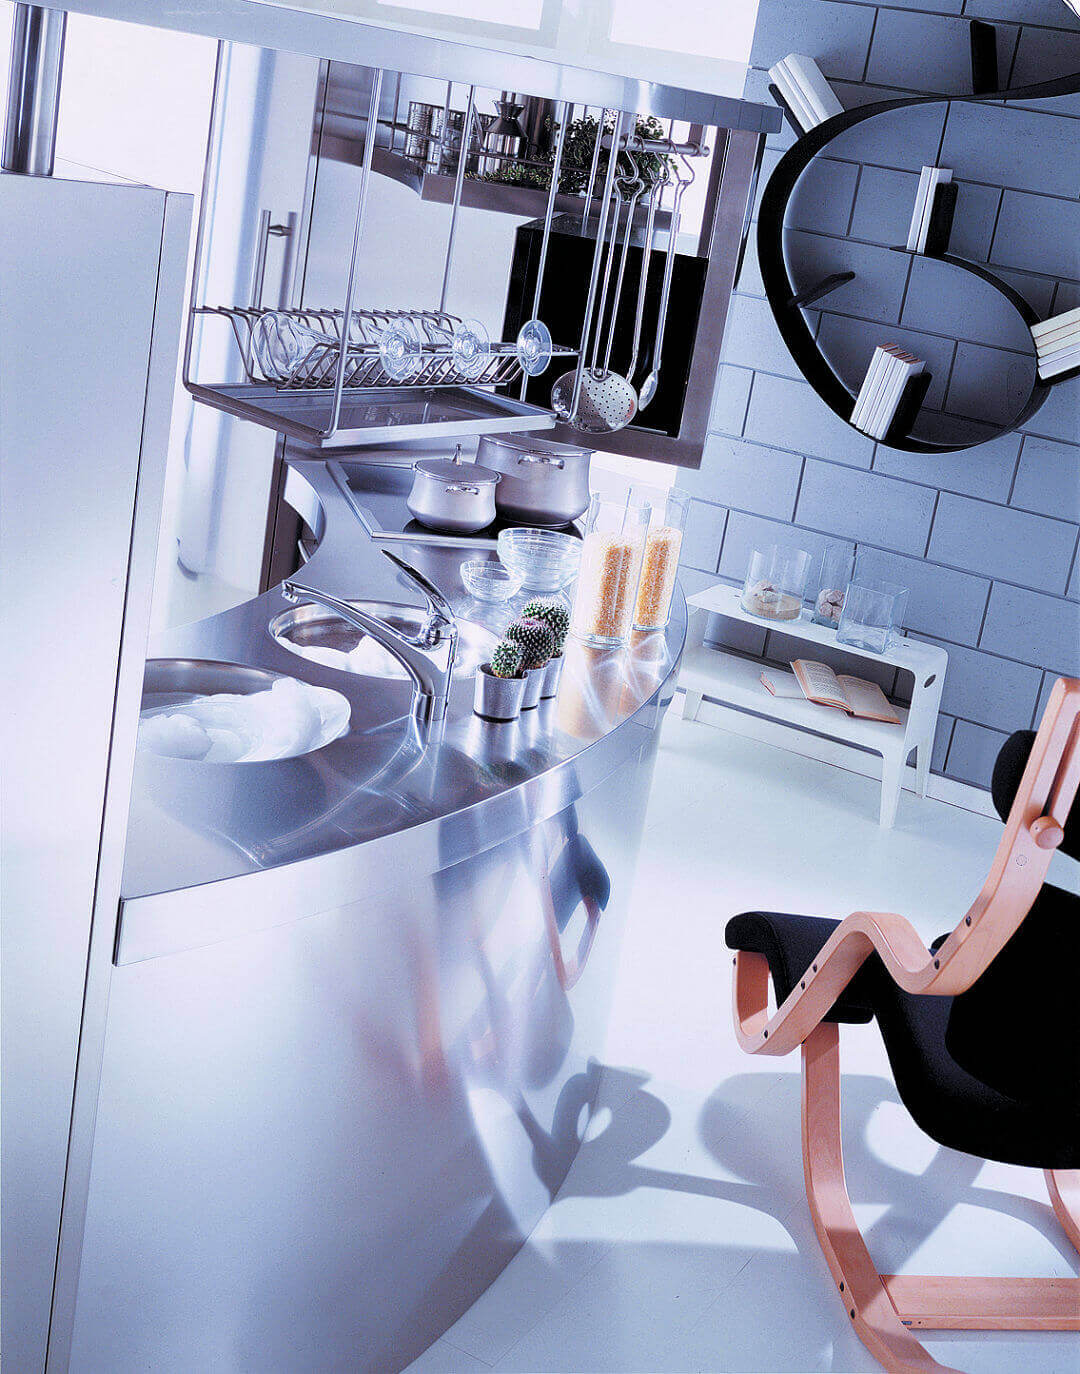 Arca Cucine Italy - Domestic stainless steel kitchens - Venus - Retro